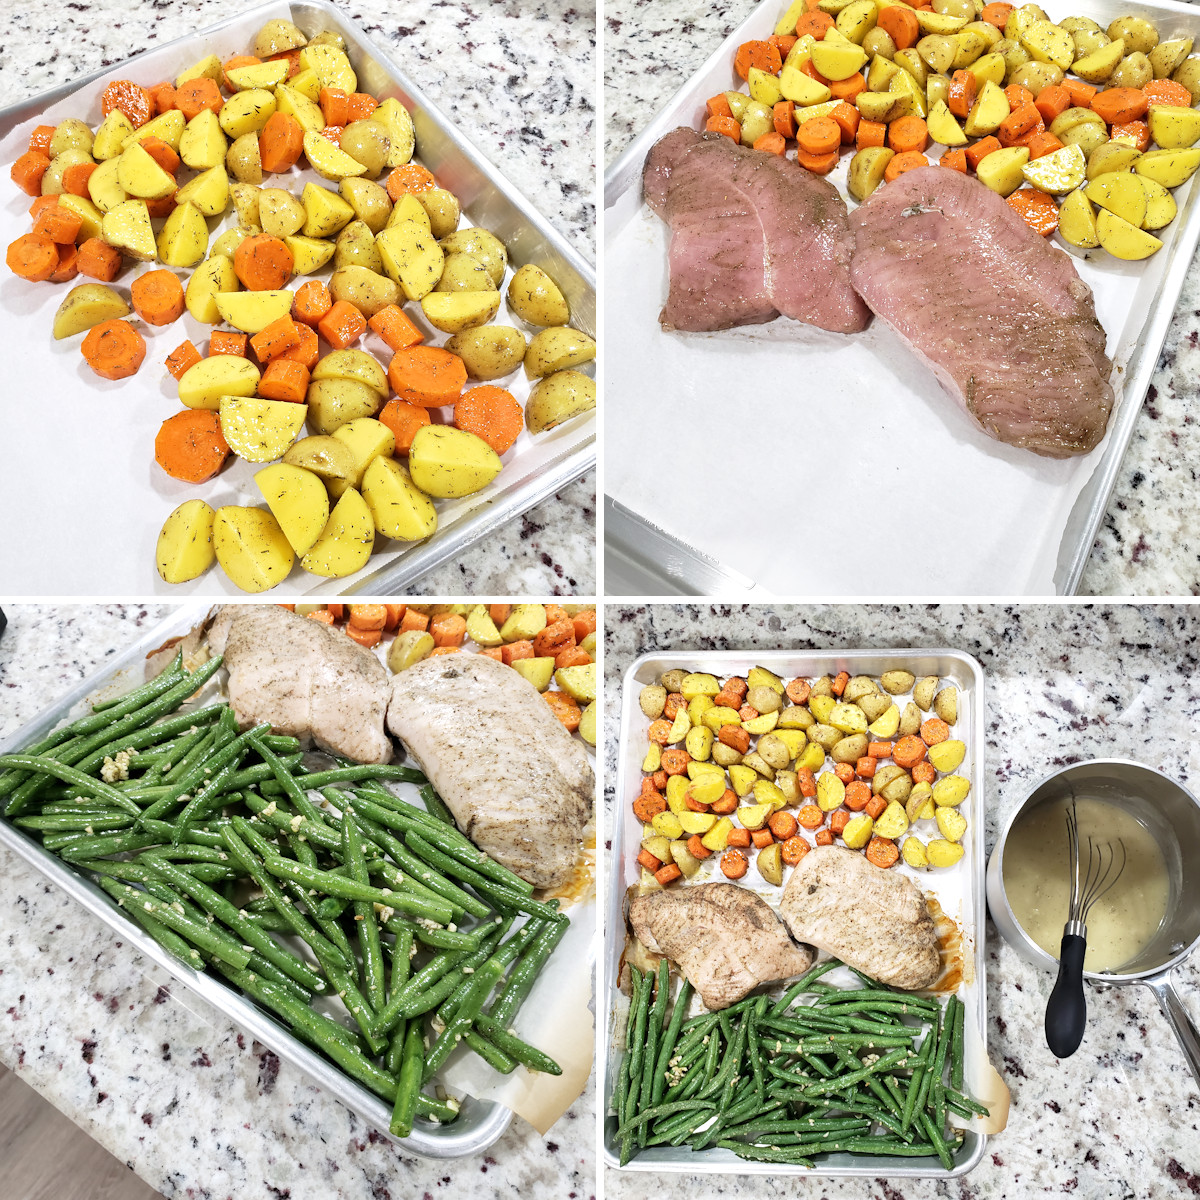 Assembling turkey tenderloin and vegetables on a sheet pan.